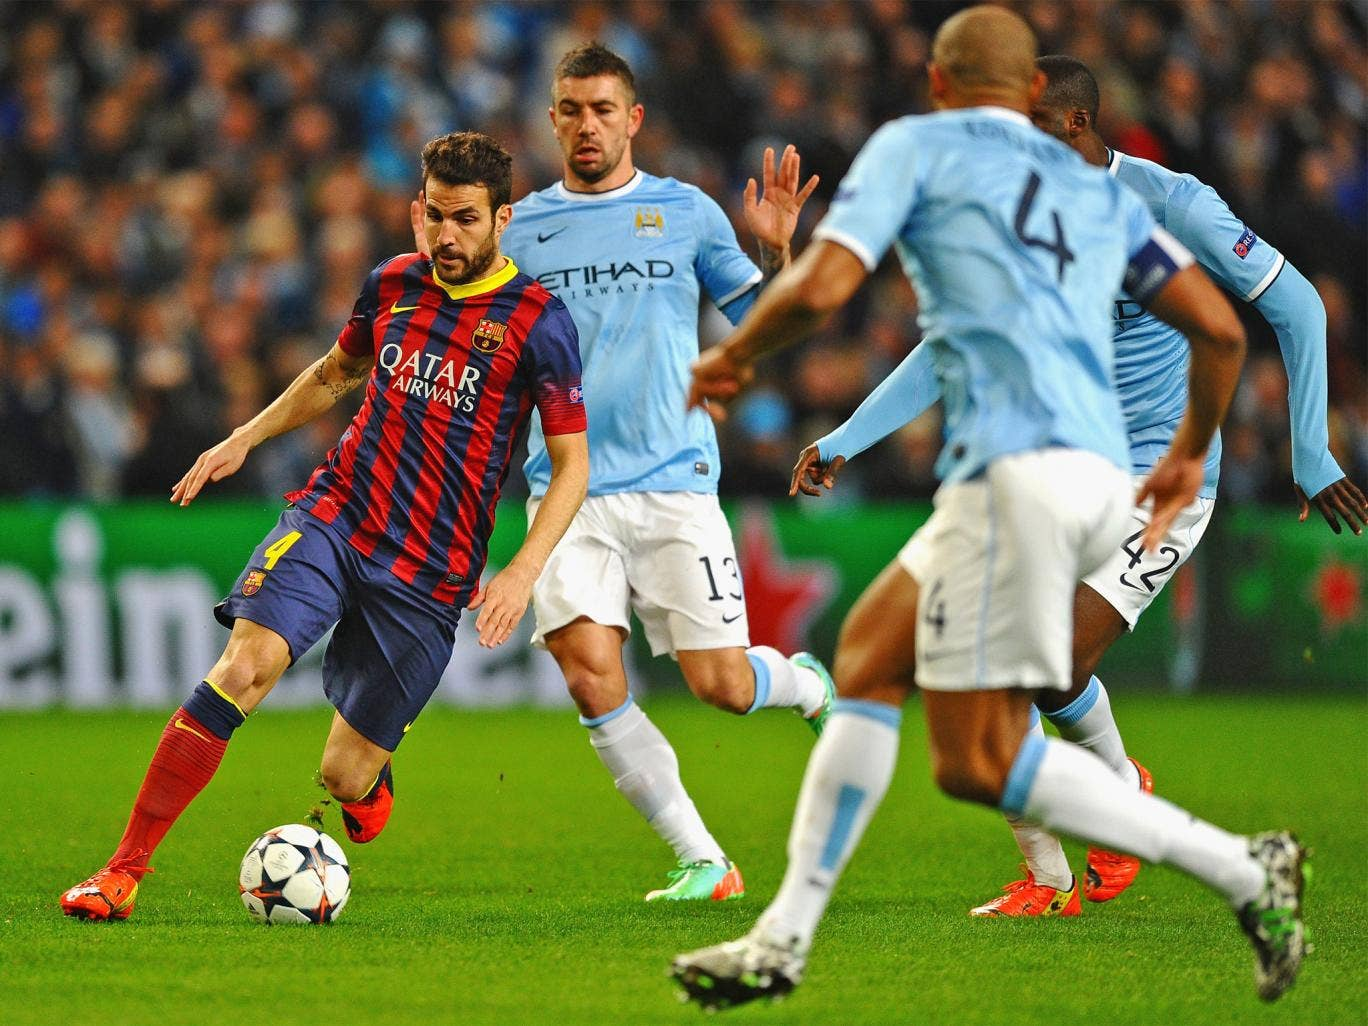 Cesc Fabregas could be a target for Manchester City, as he is classed as home-grown from his Arsenal days